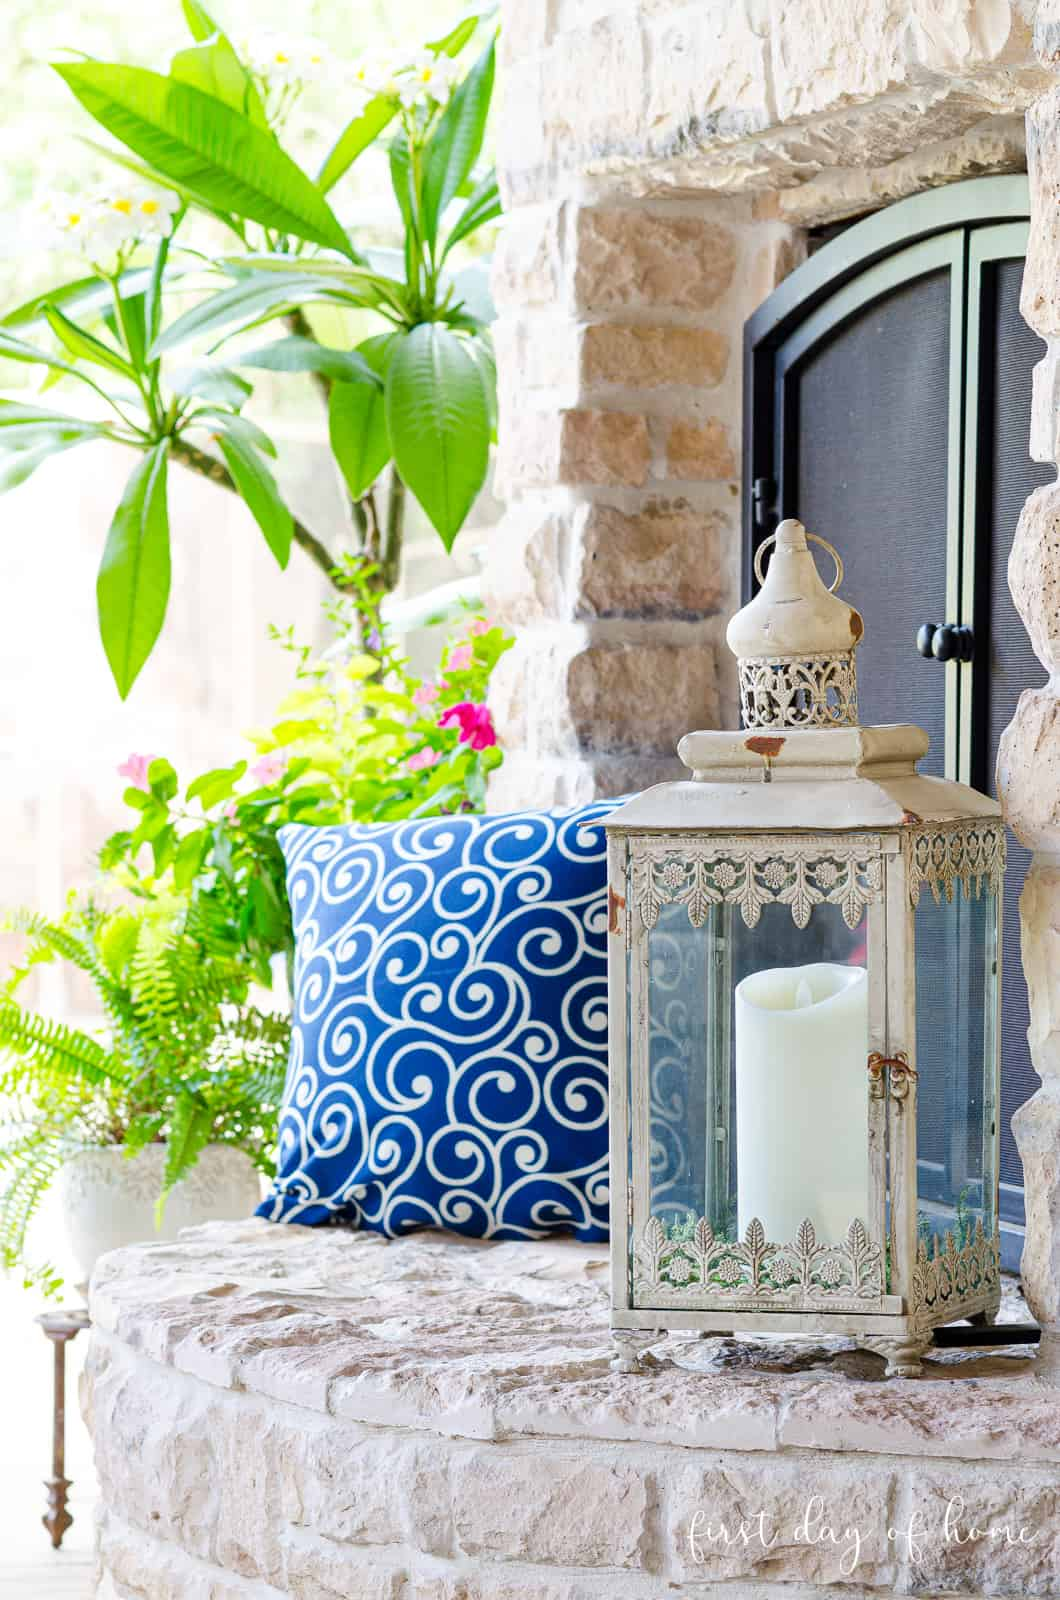 Neutral rustic Moroccan style lantern with pillar candle on outdoor patio with blue swirl pillow and plants in background